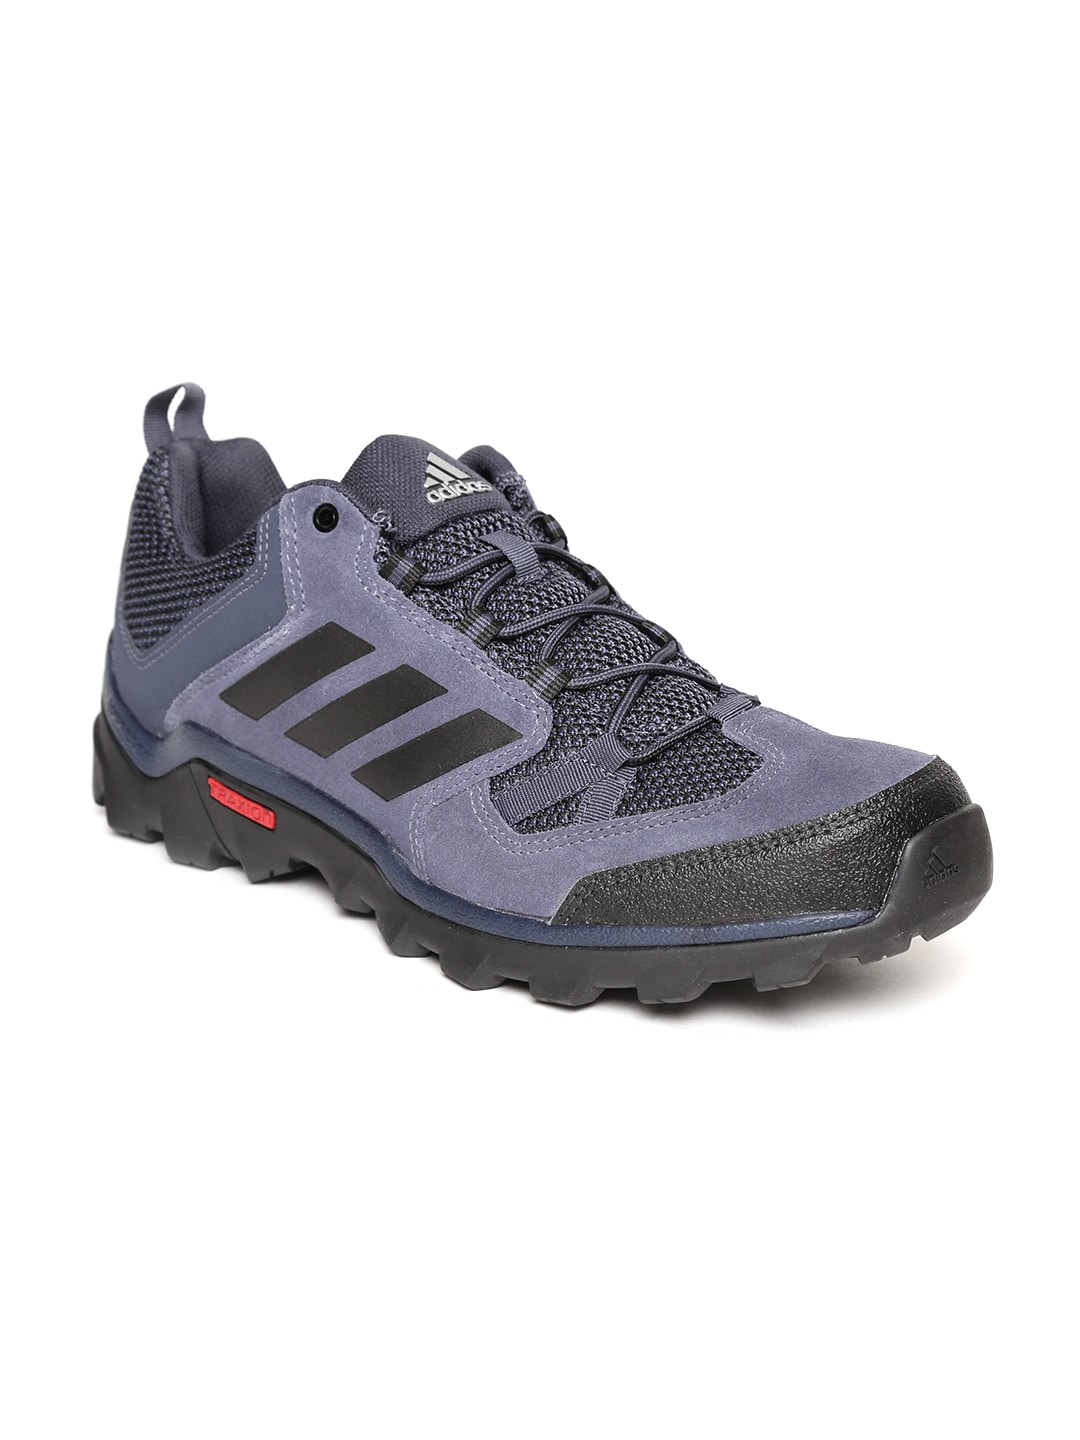 Adidas Hat Lipstick Sports Shoes - Buy Adidas Hat Lipstick Sports Shoes  online in India 96cd7073075e